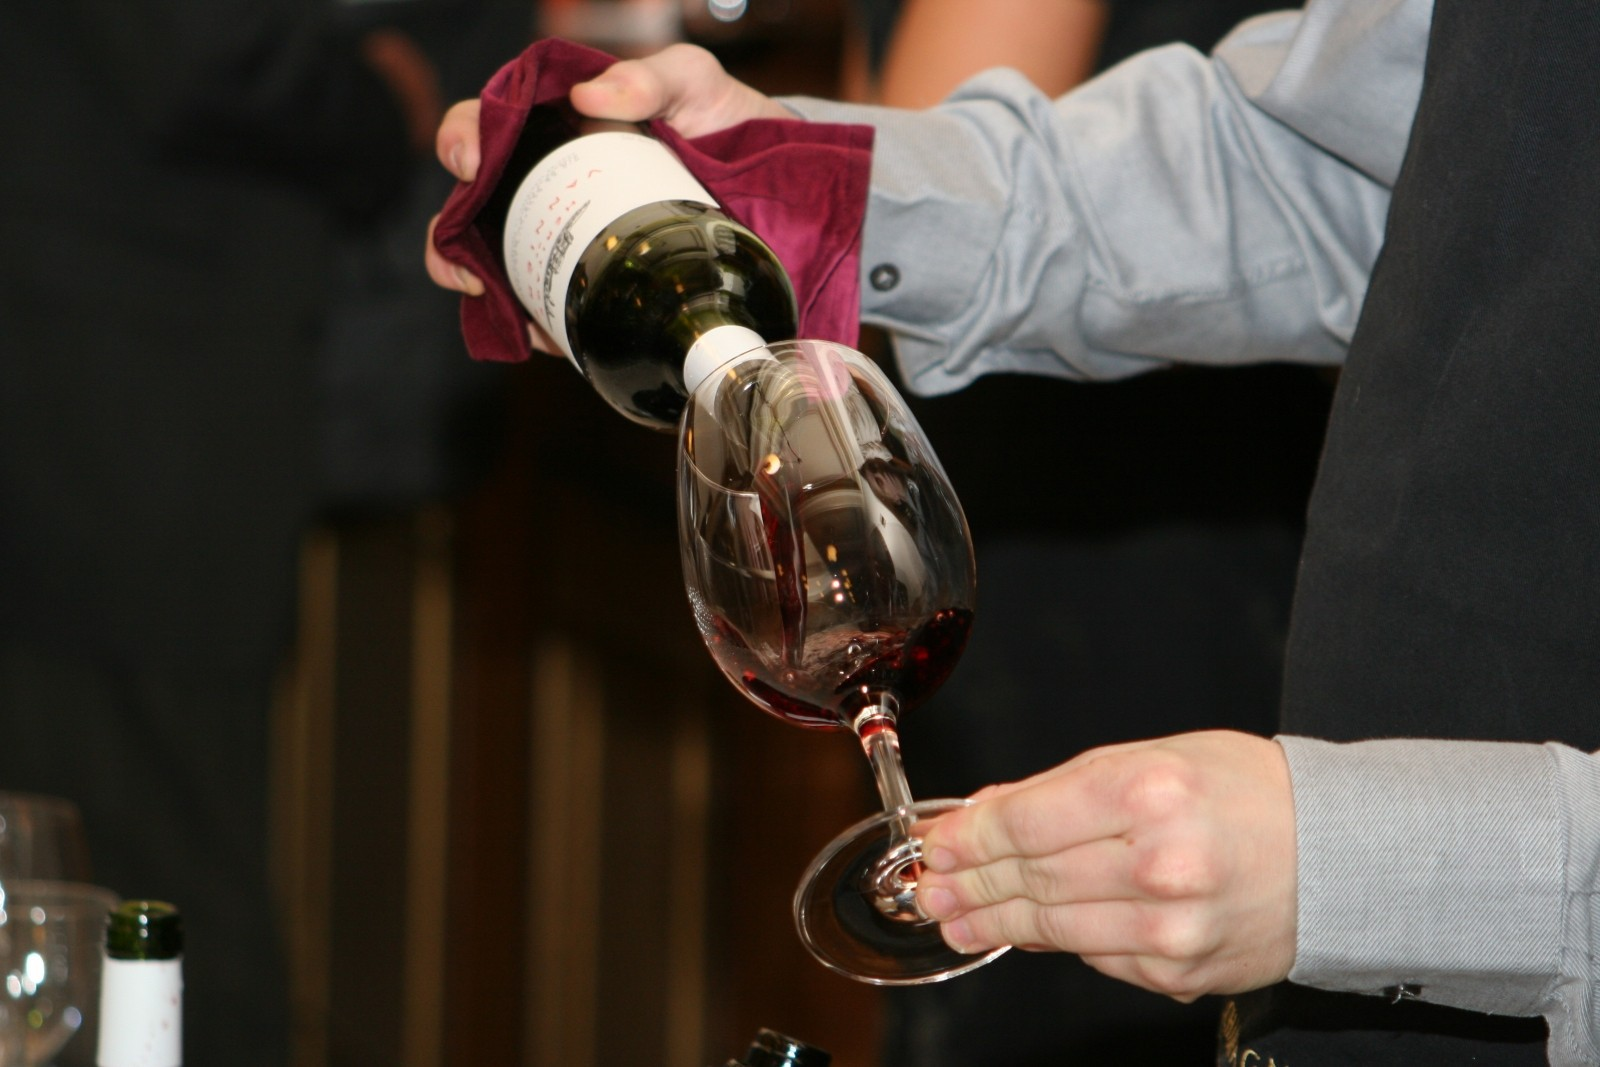 waiter-pouring-wine-from-bottle-into-wineglass.jpg